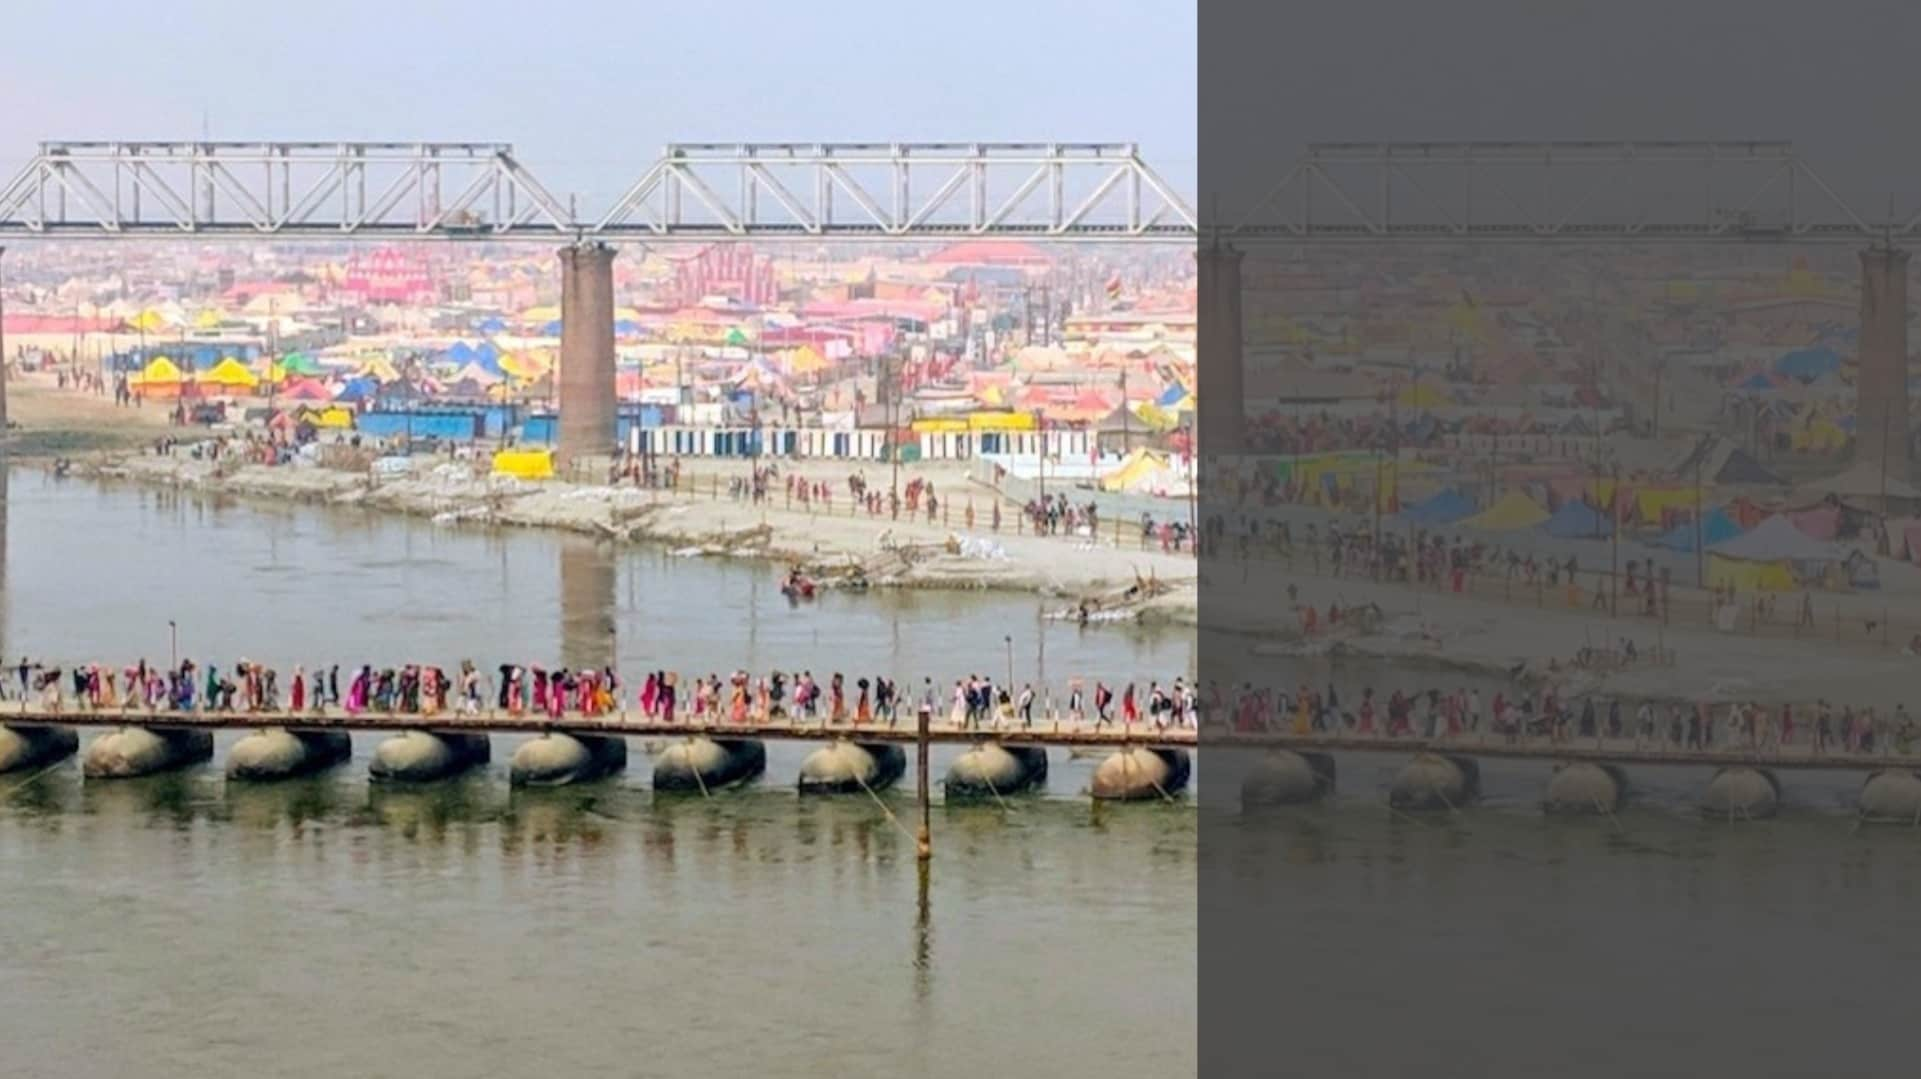 Clean Kumbh, dirty Ganga: River's transformation during Mela was 'event management', not sustainable solution